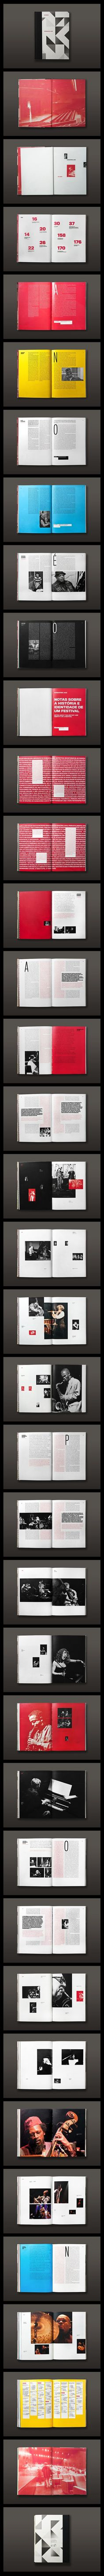 Jazz 20 Year Edition Book #jazz #yearbook